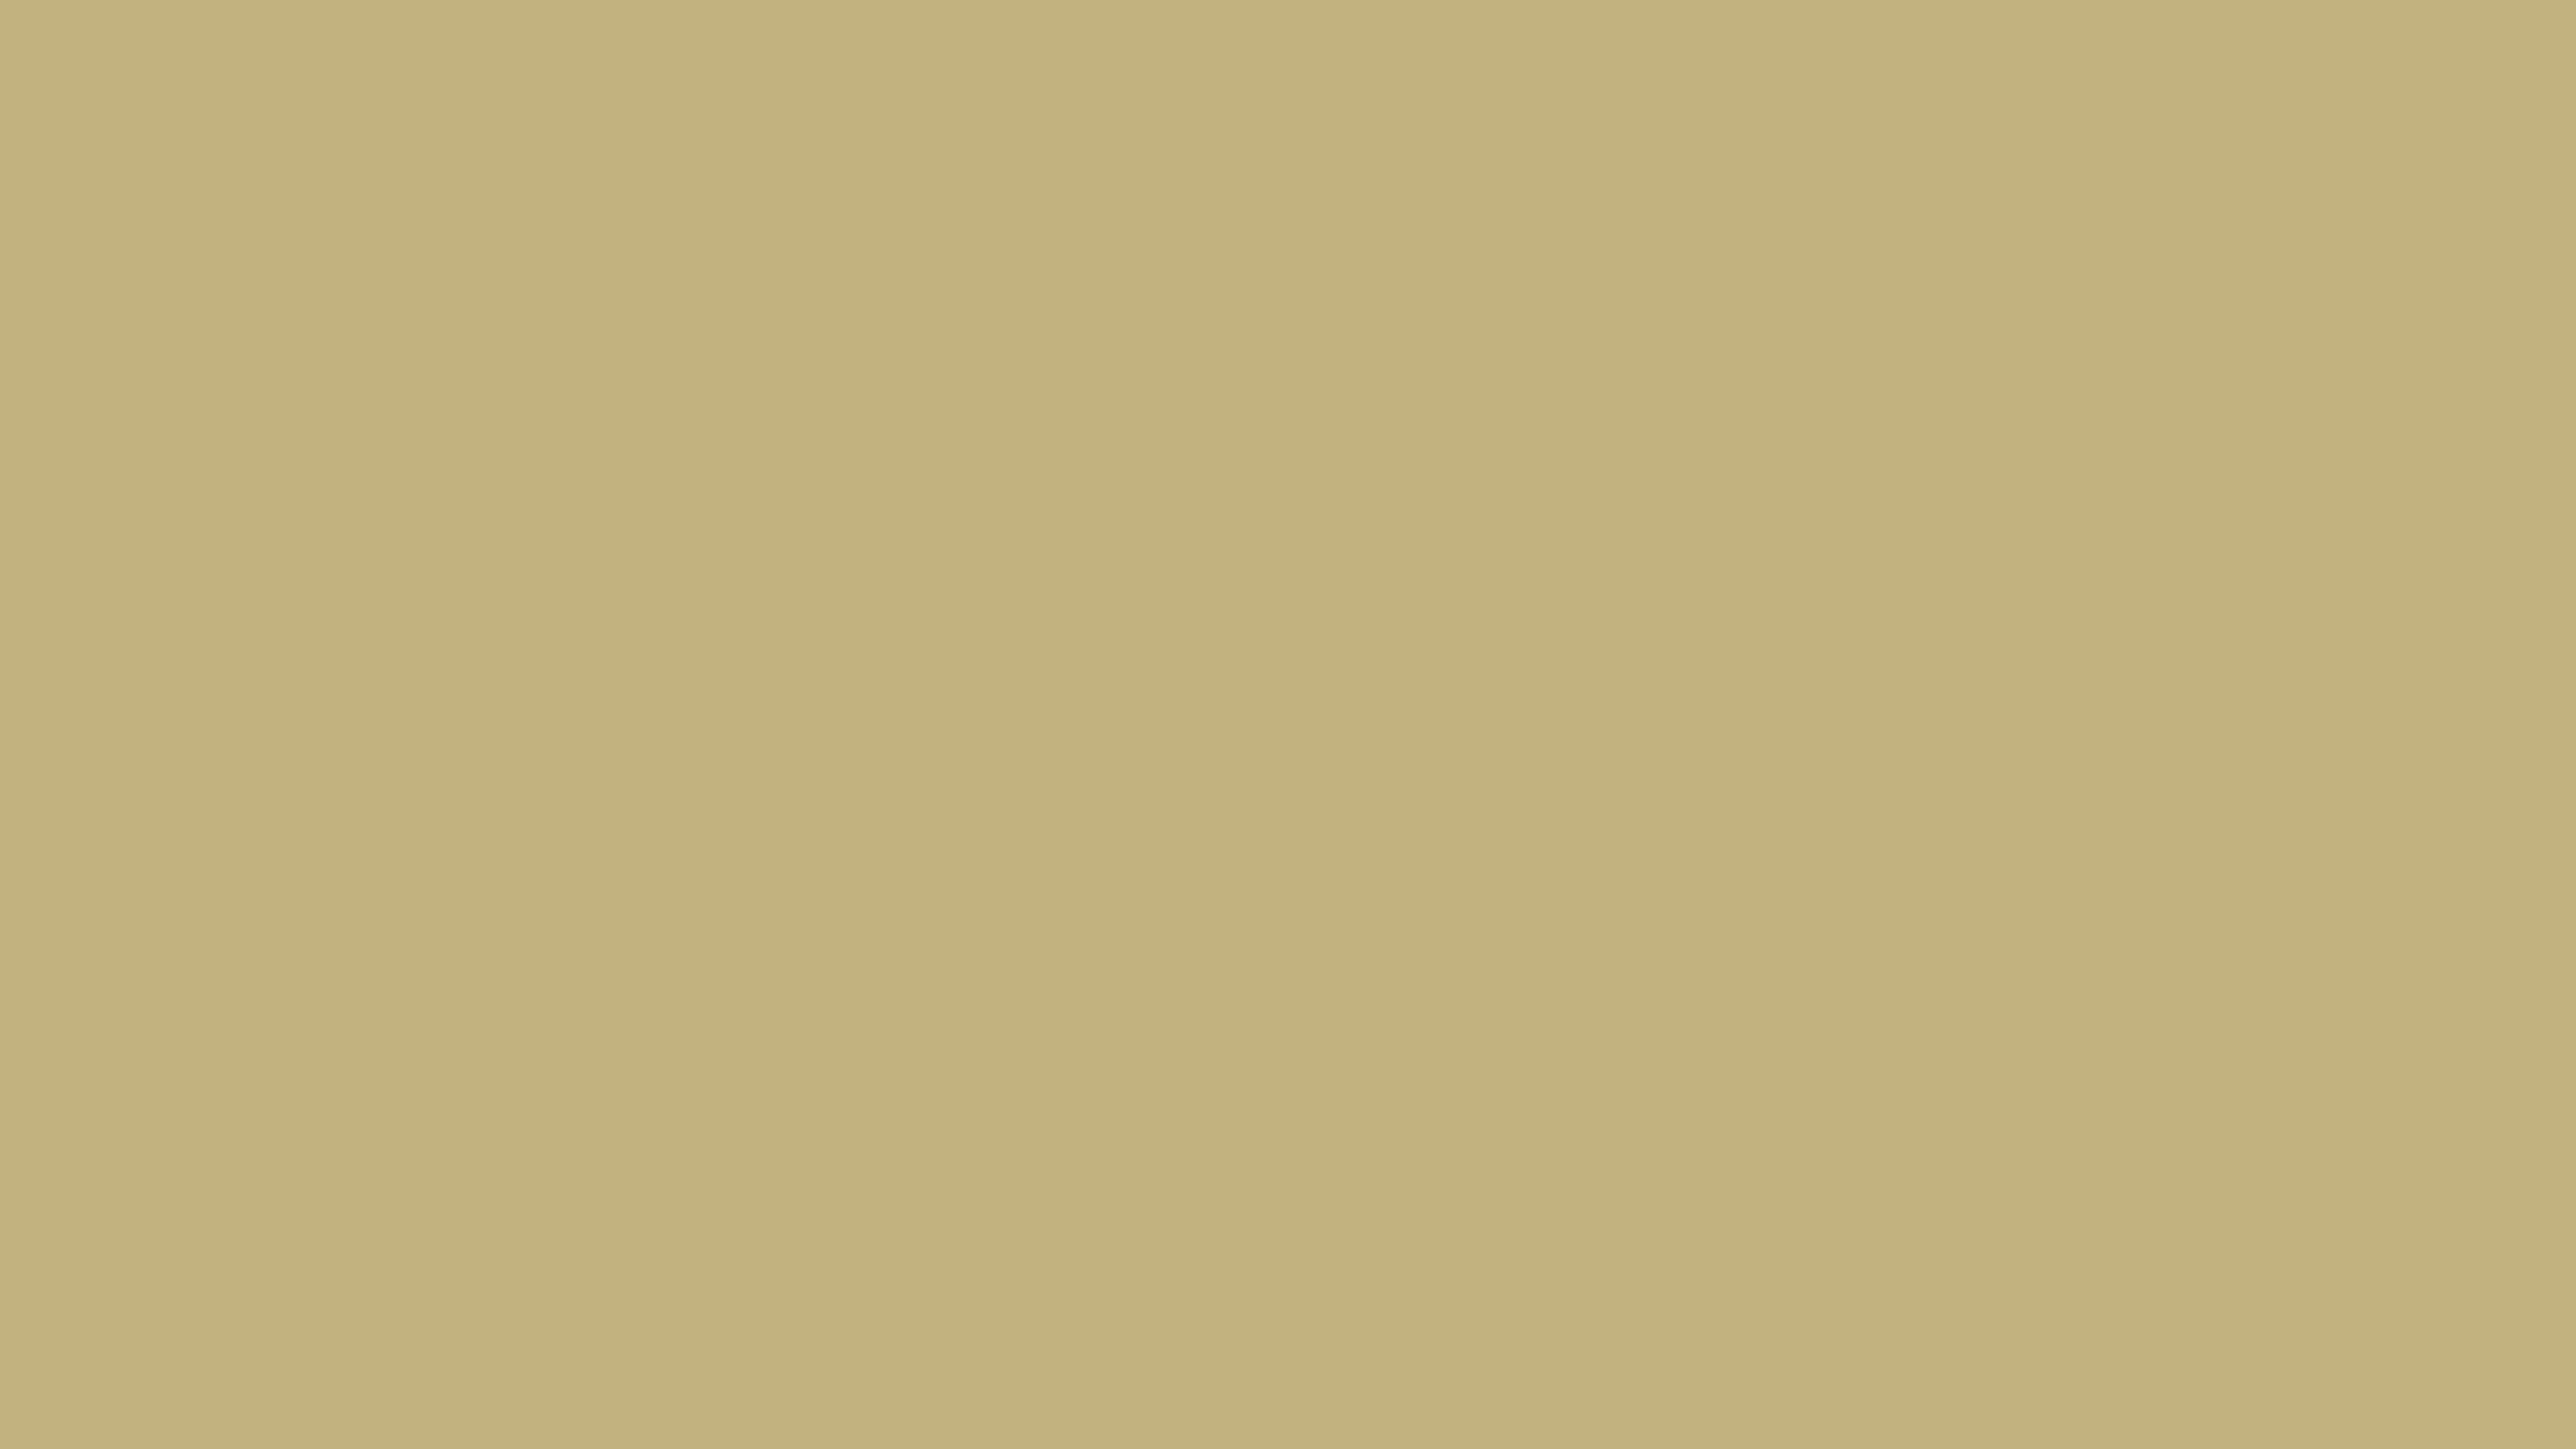 3840x2160 Sand Solid Color Background